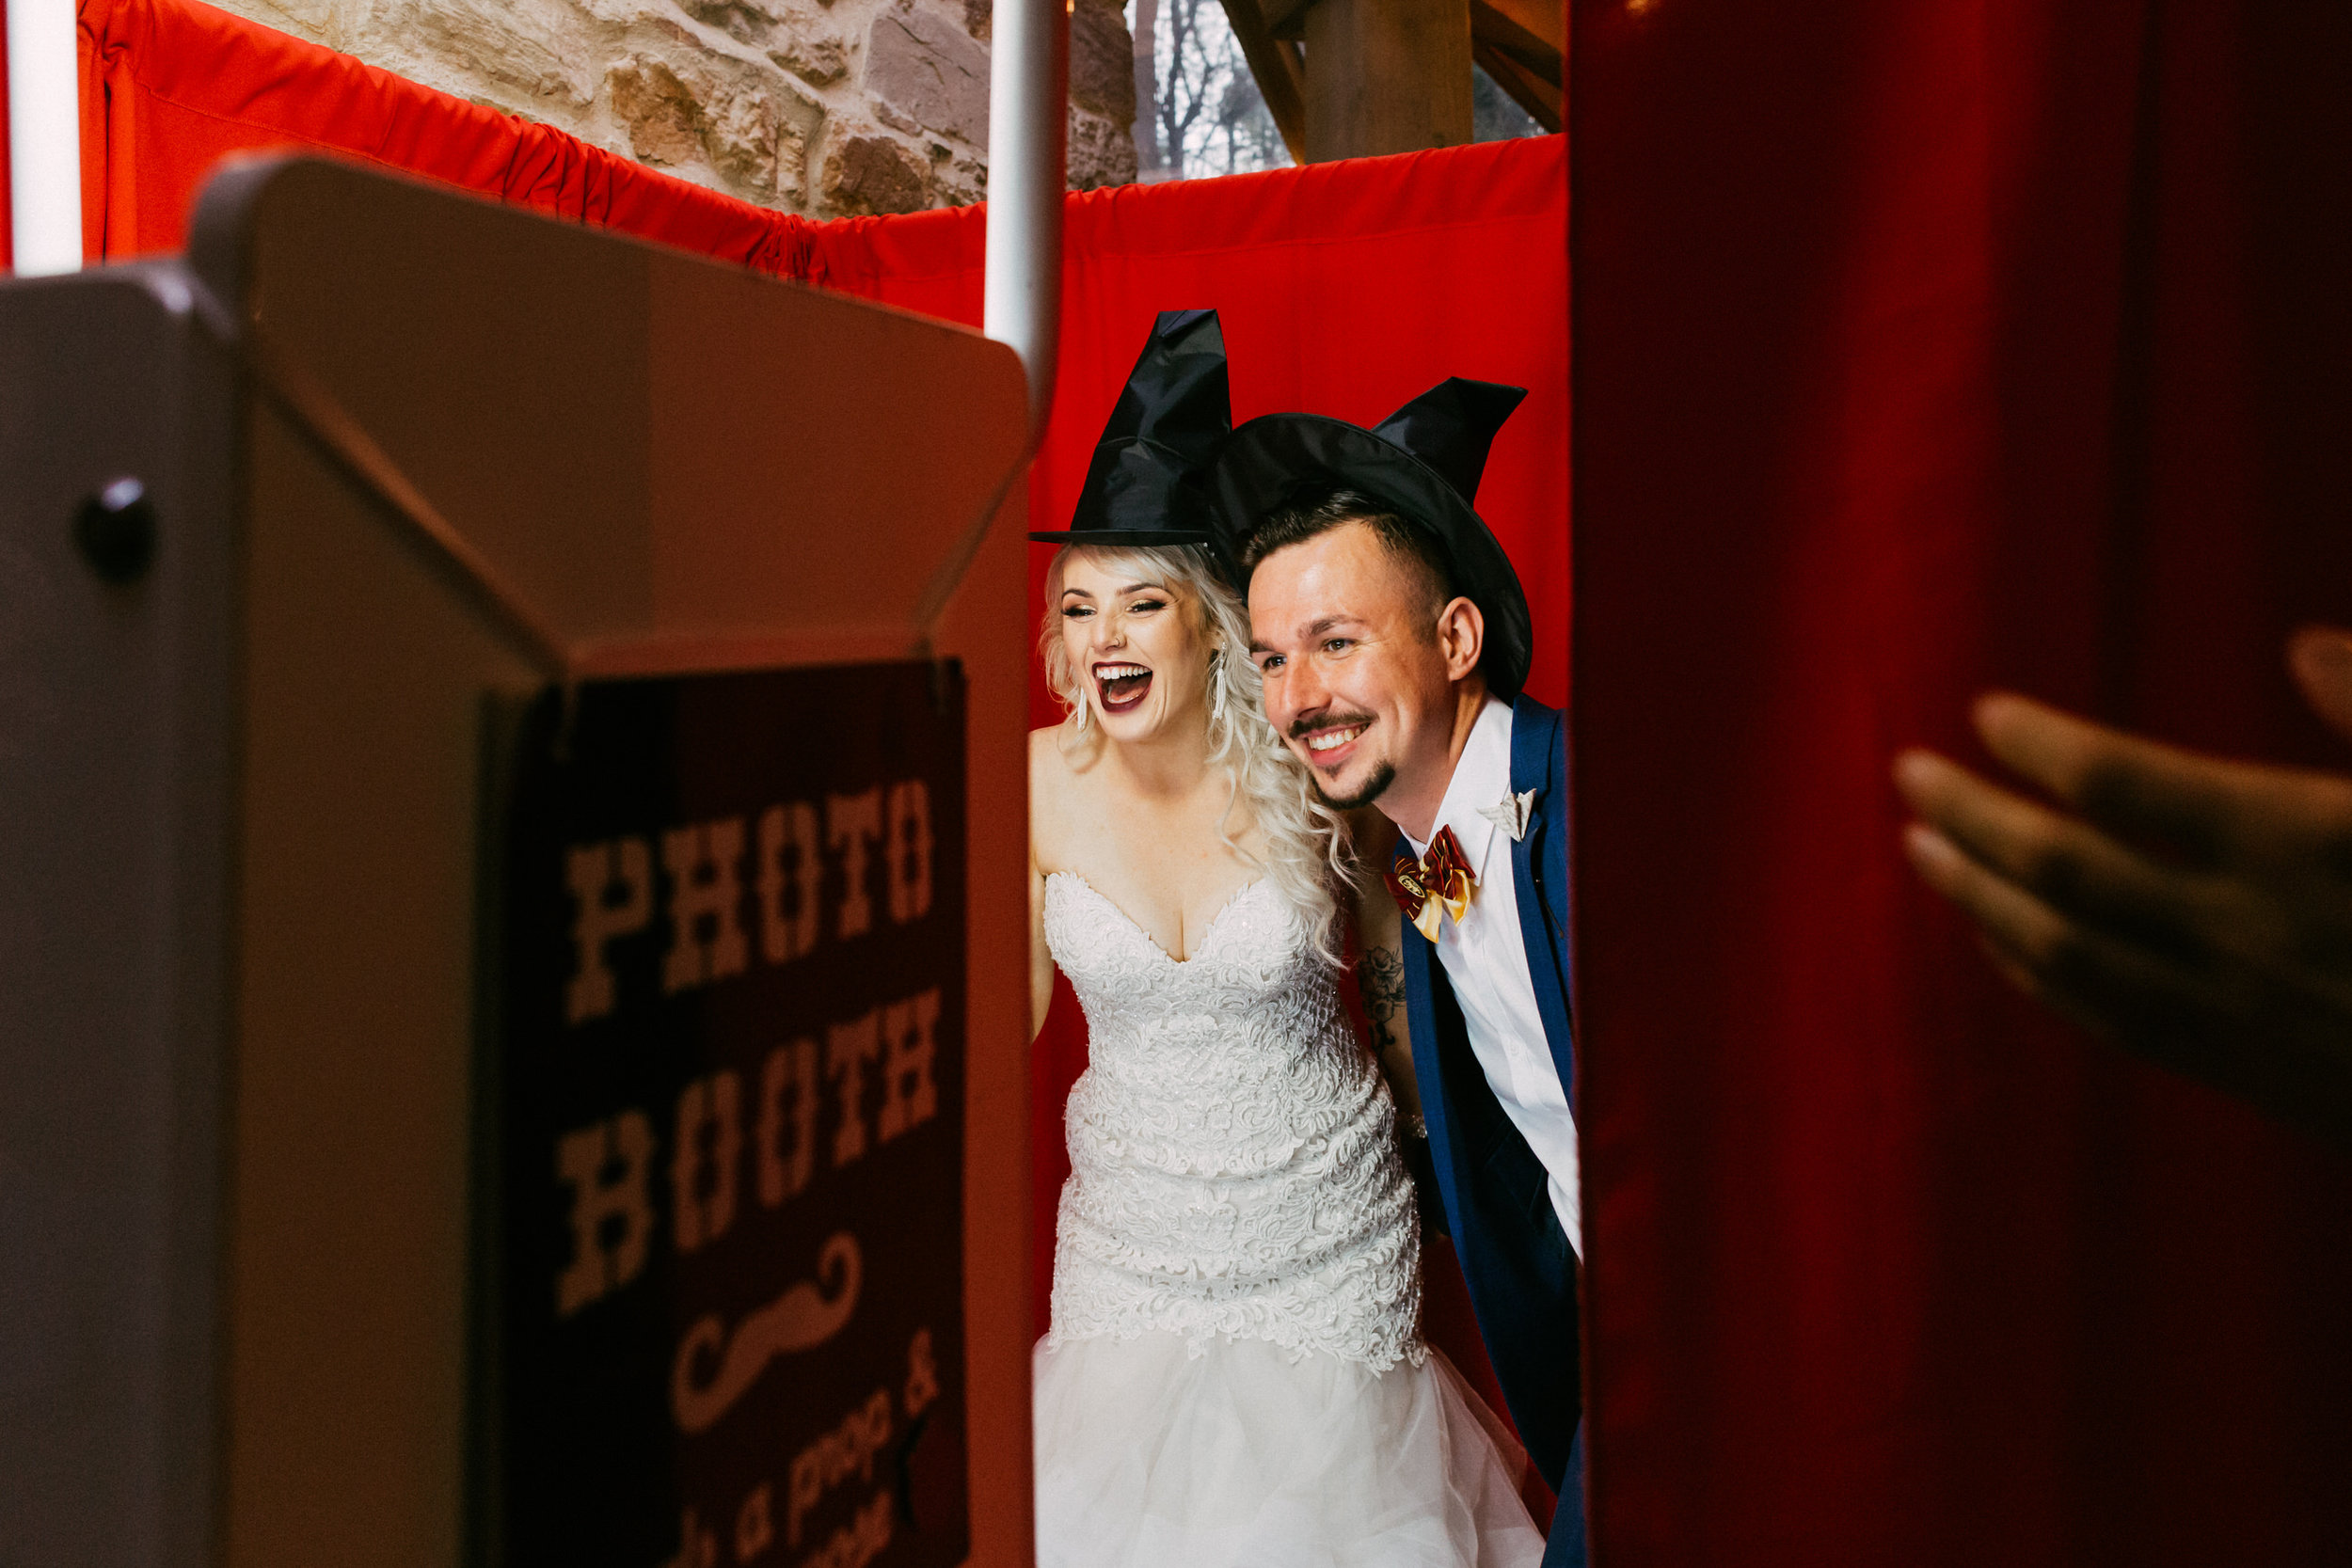 Harry Potter Wedding Bridgewater Mill 130.jpg